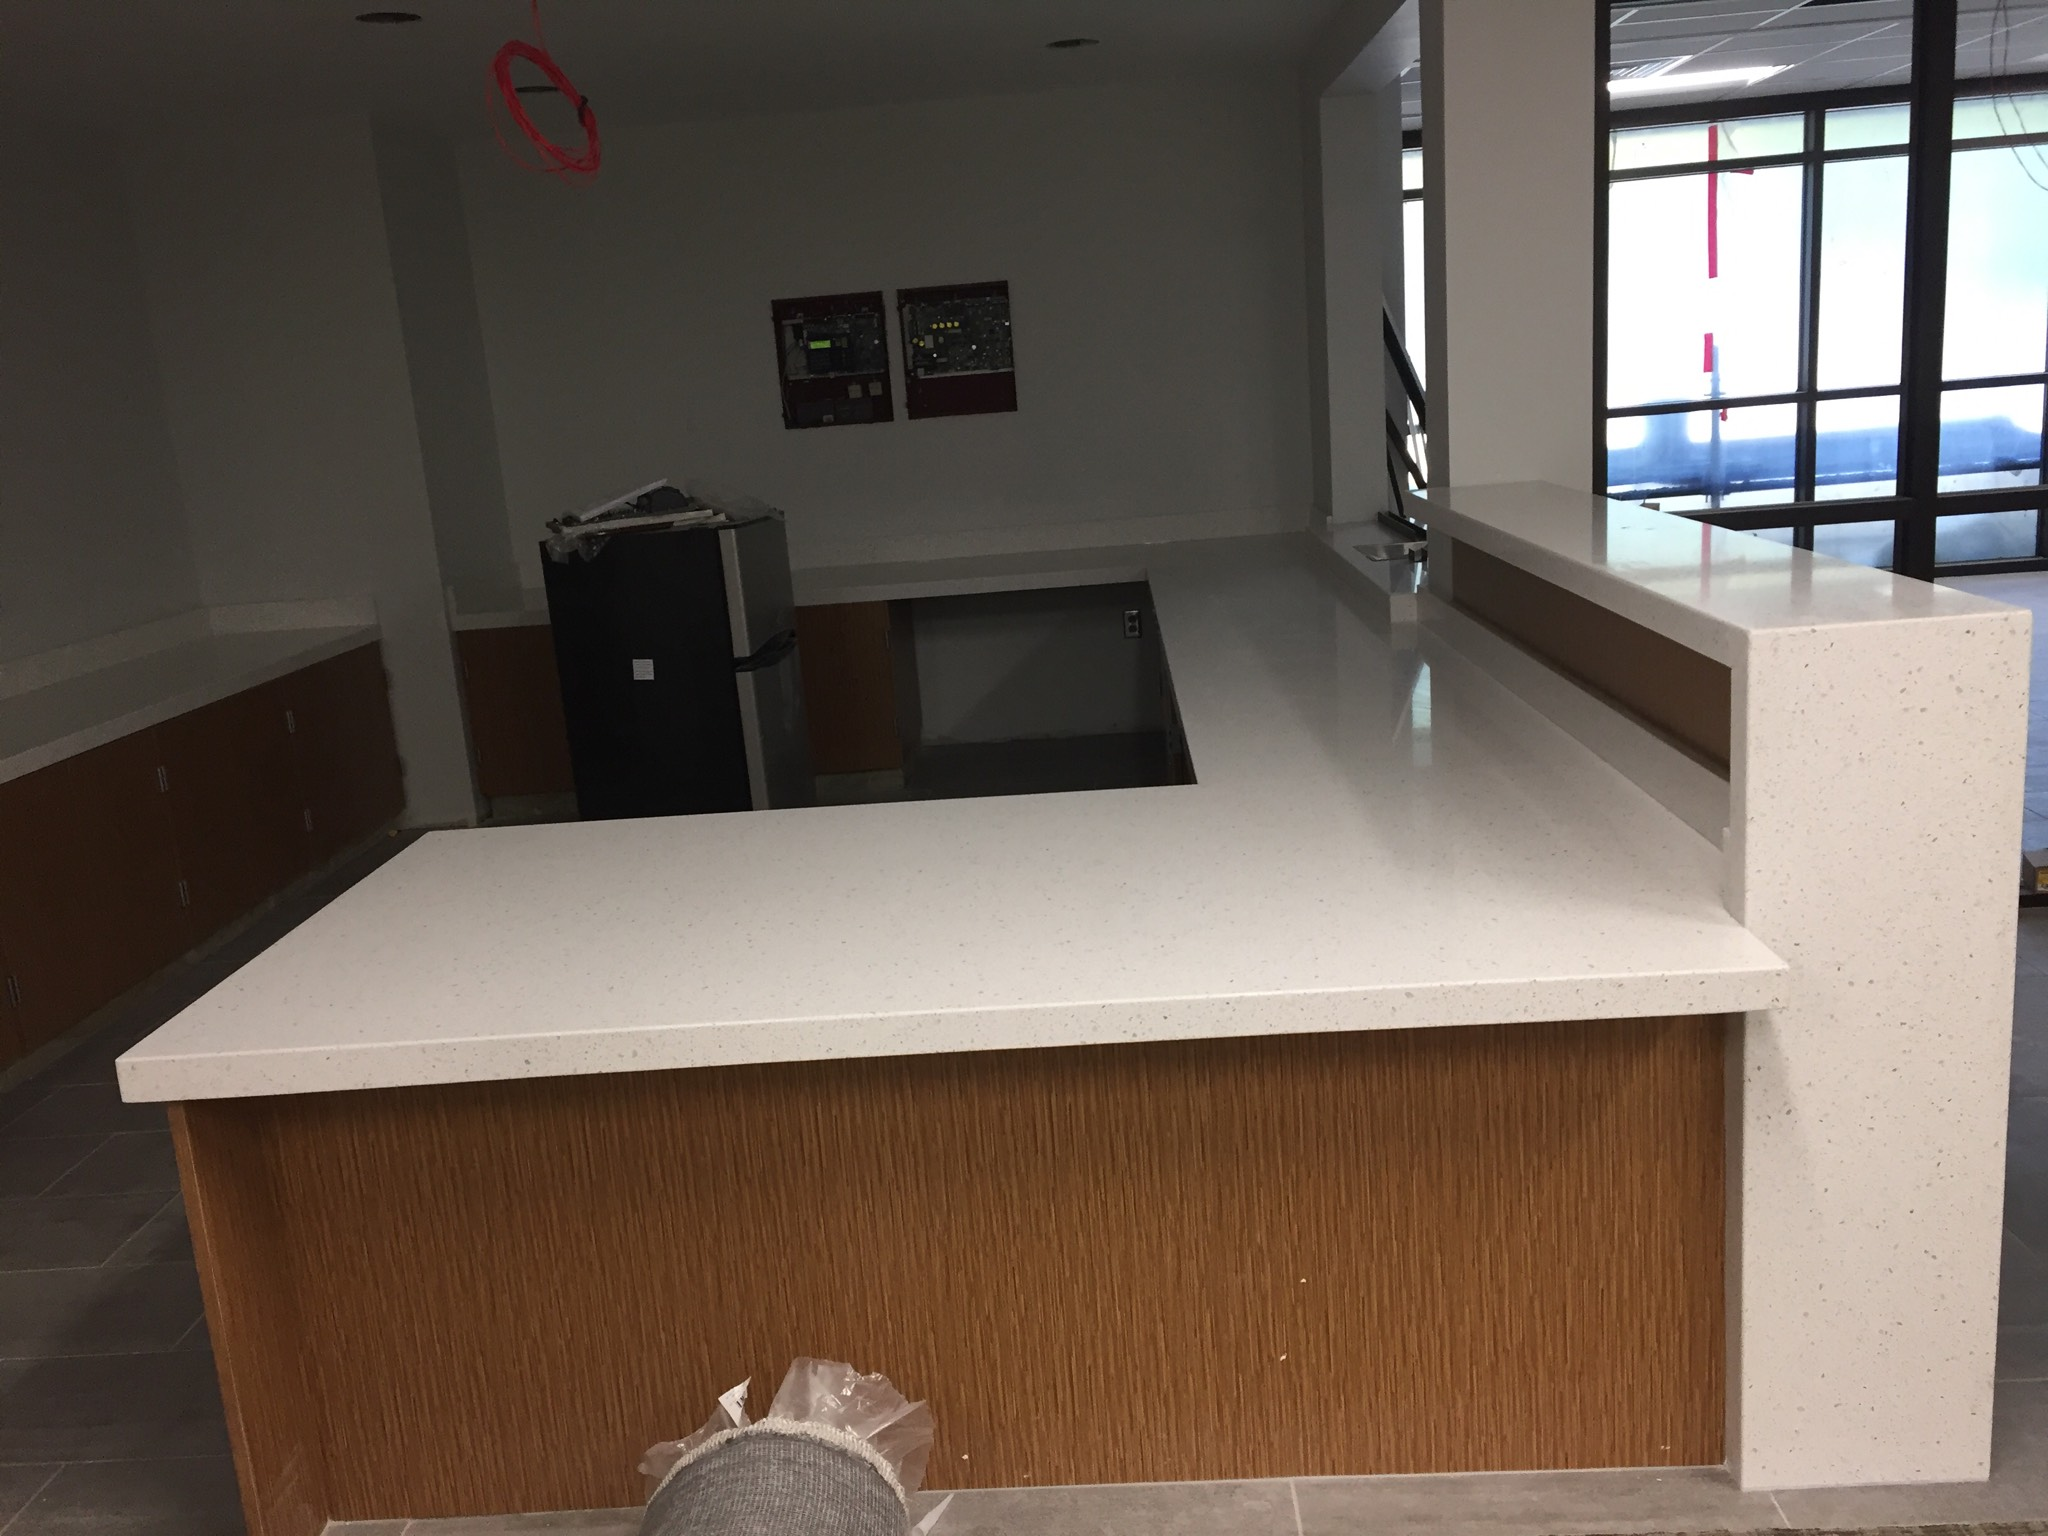 Middle school front desk